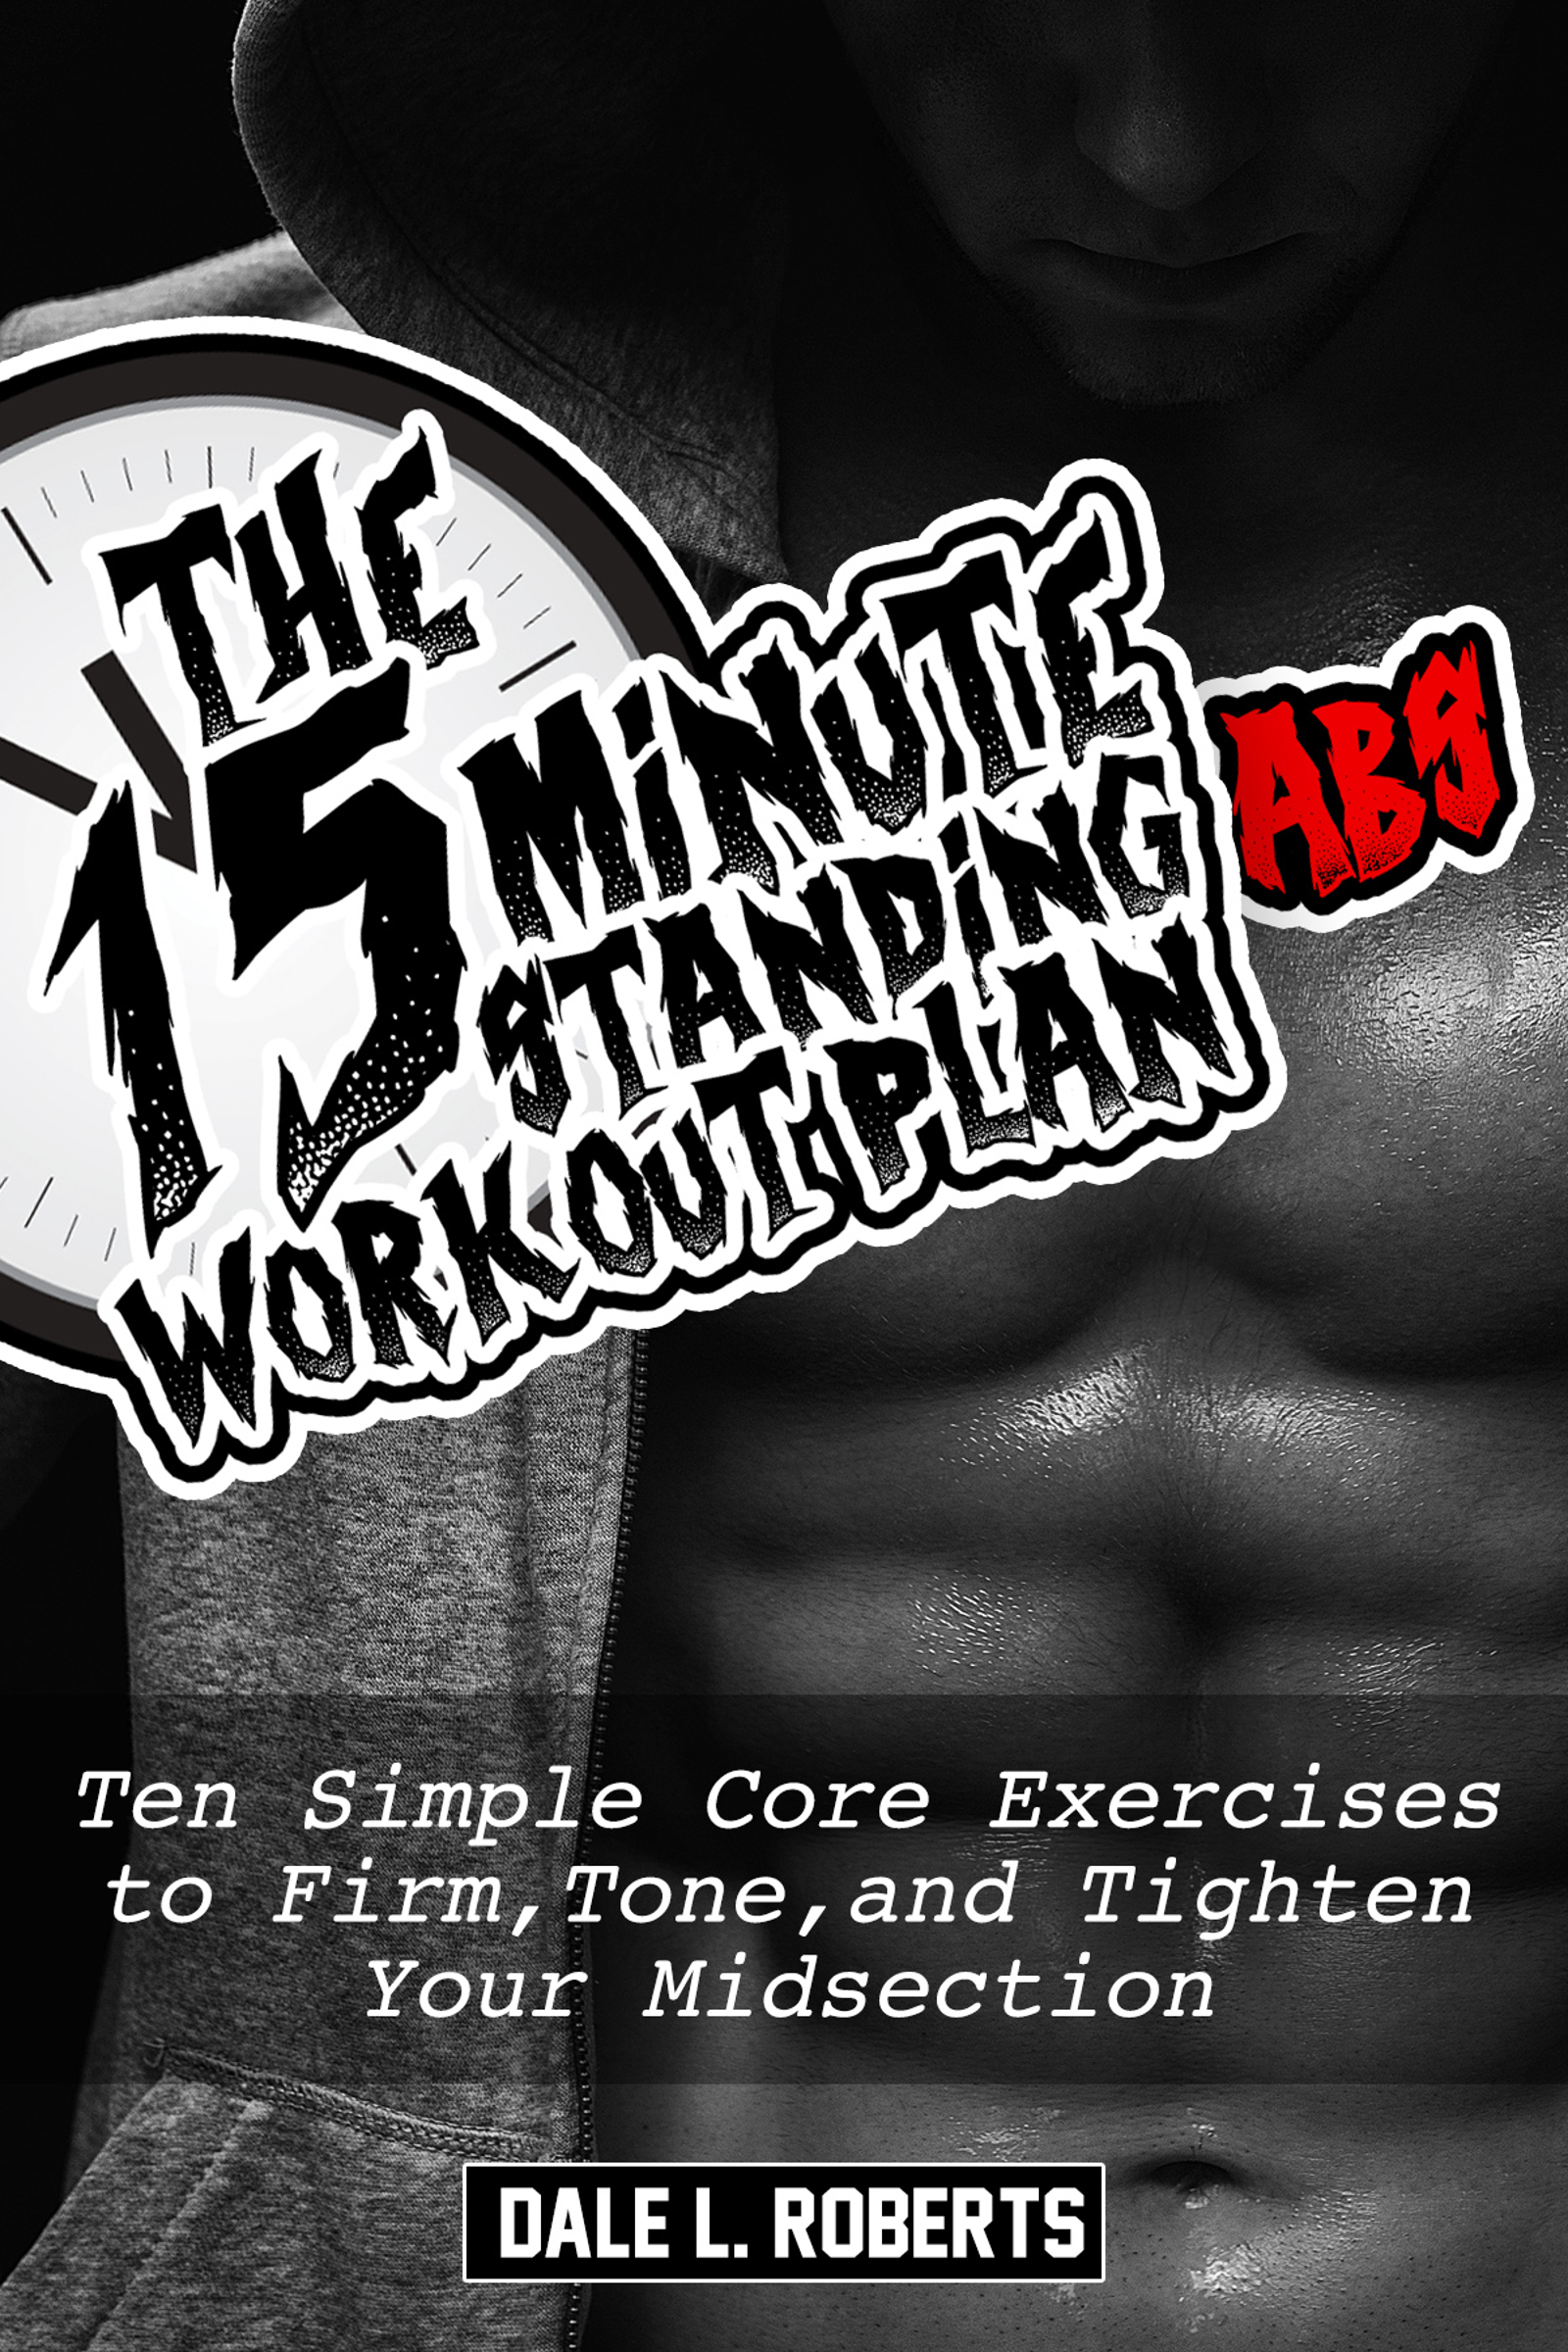 The 15-Minute Standing Abs Workout Plan: Ten Simple Core Exercises to Firm, Tone, and Tighten Your Midsection Dale L. Roberts